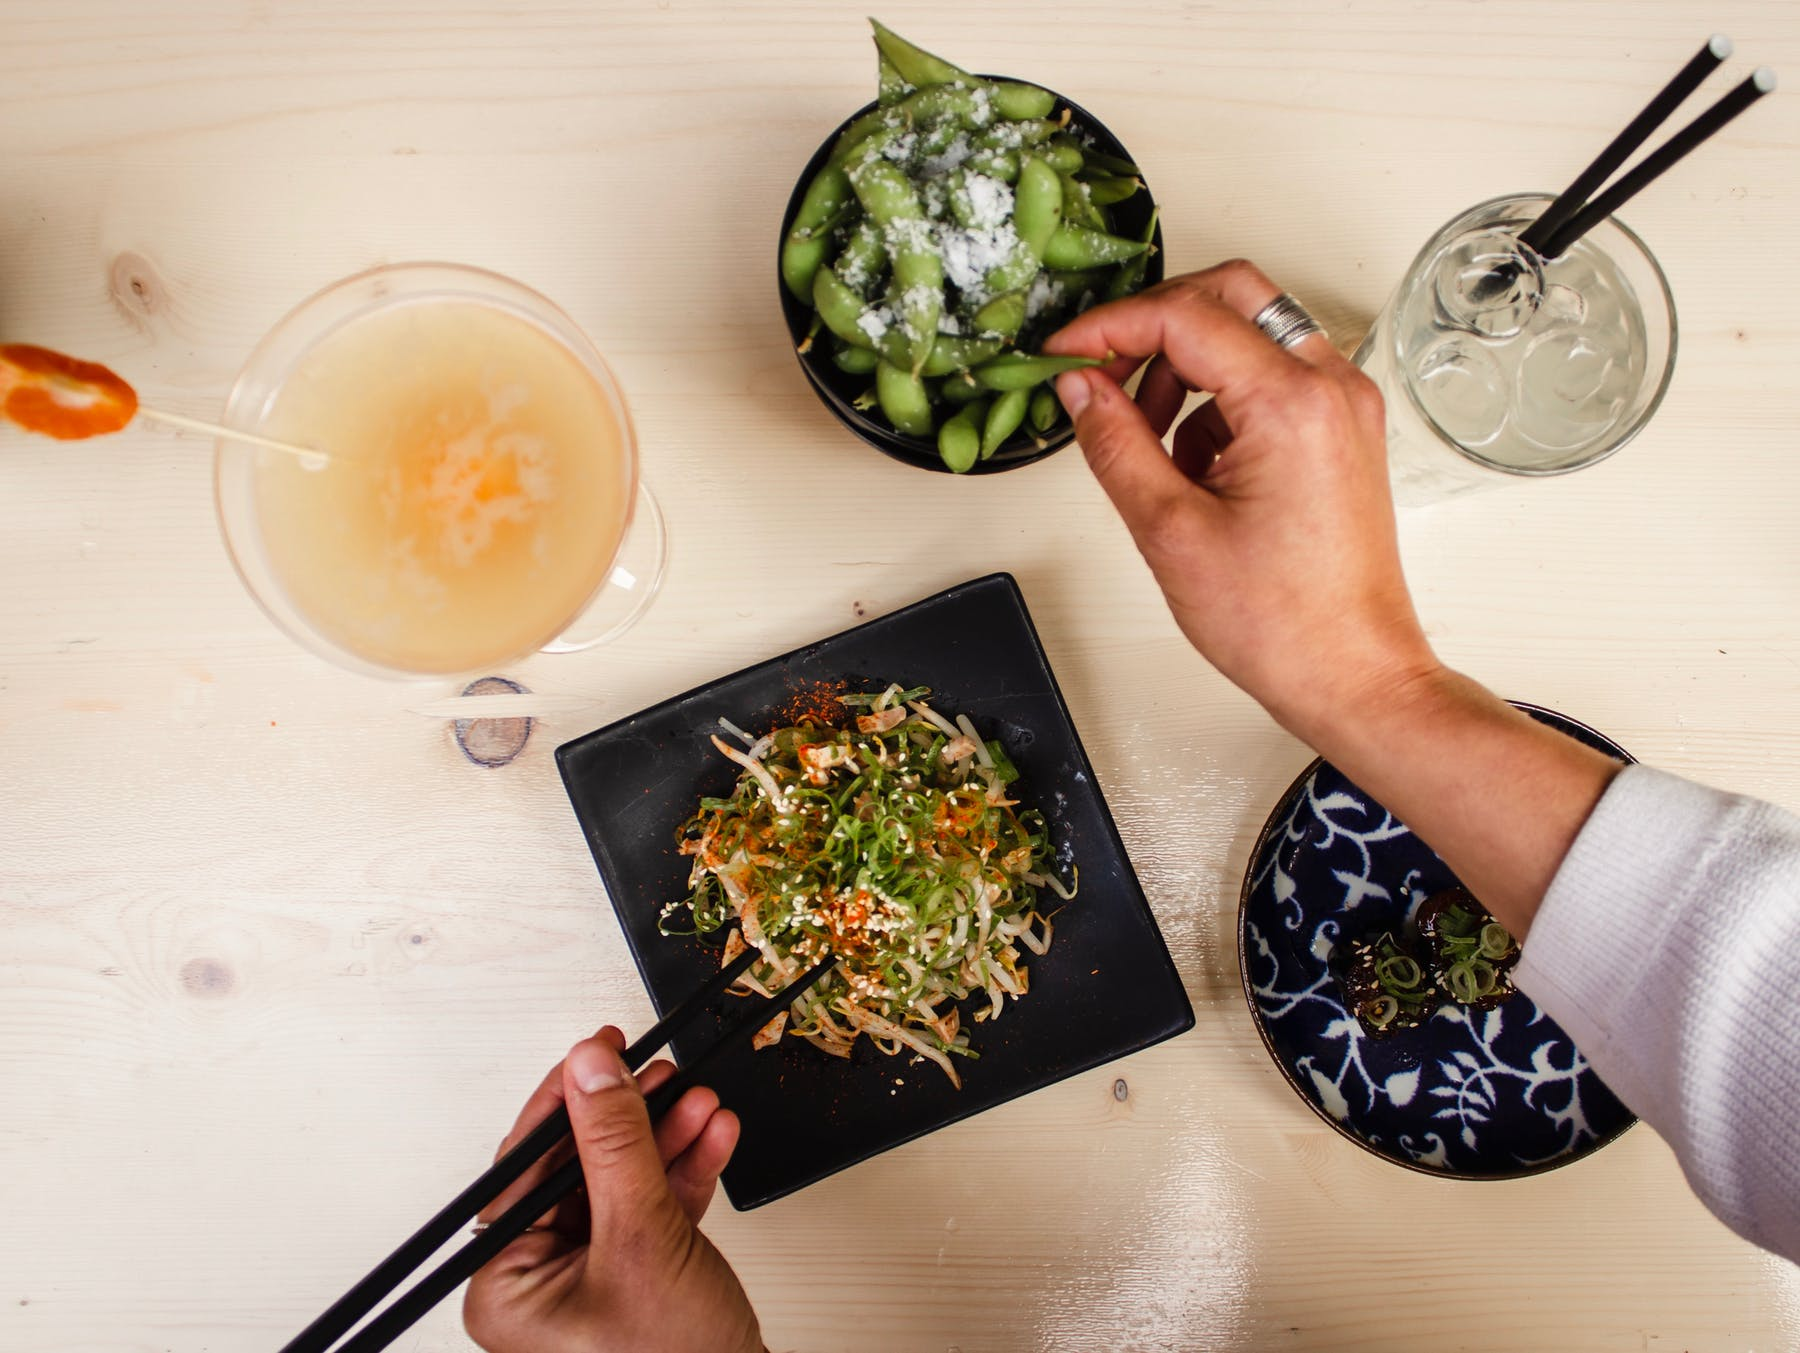 a person eating with chopsticks